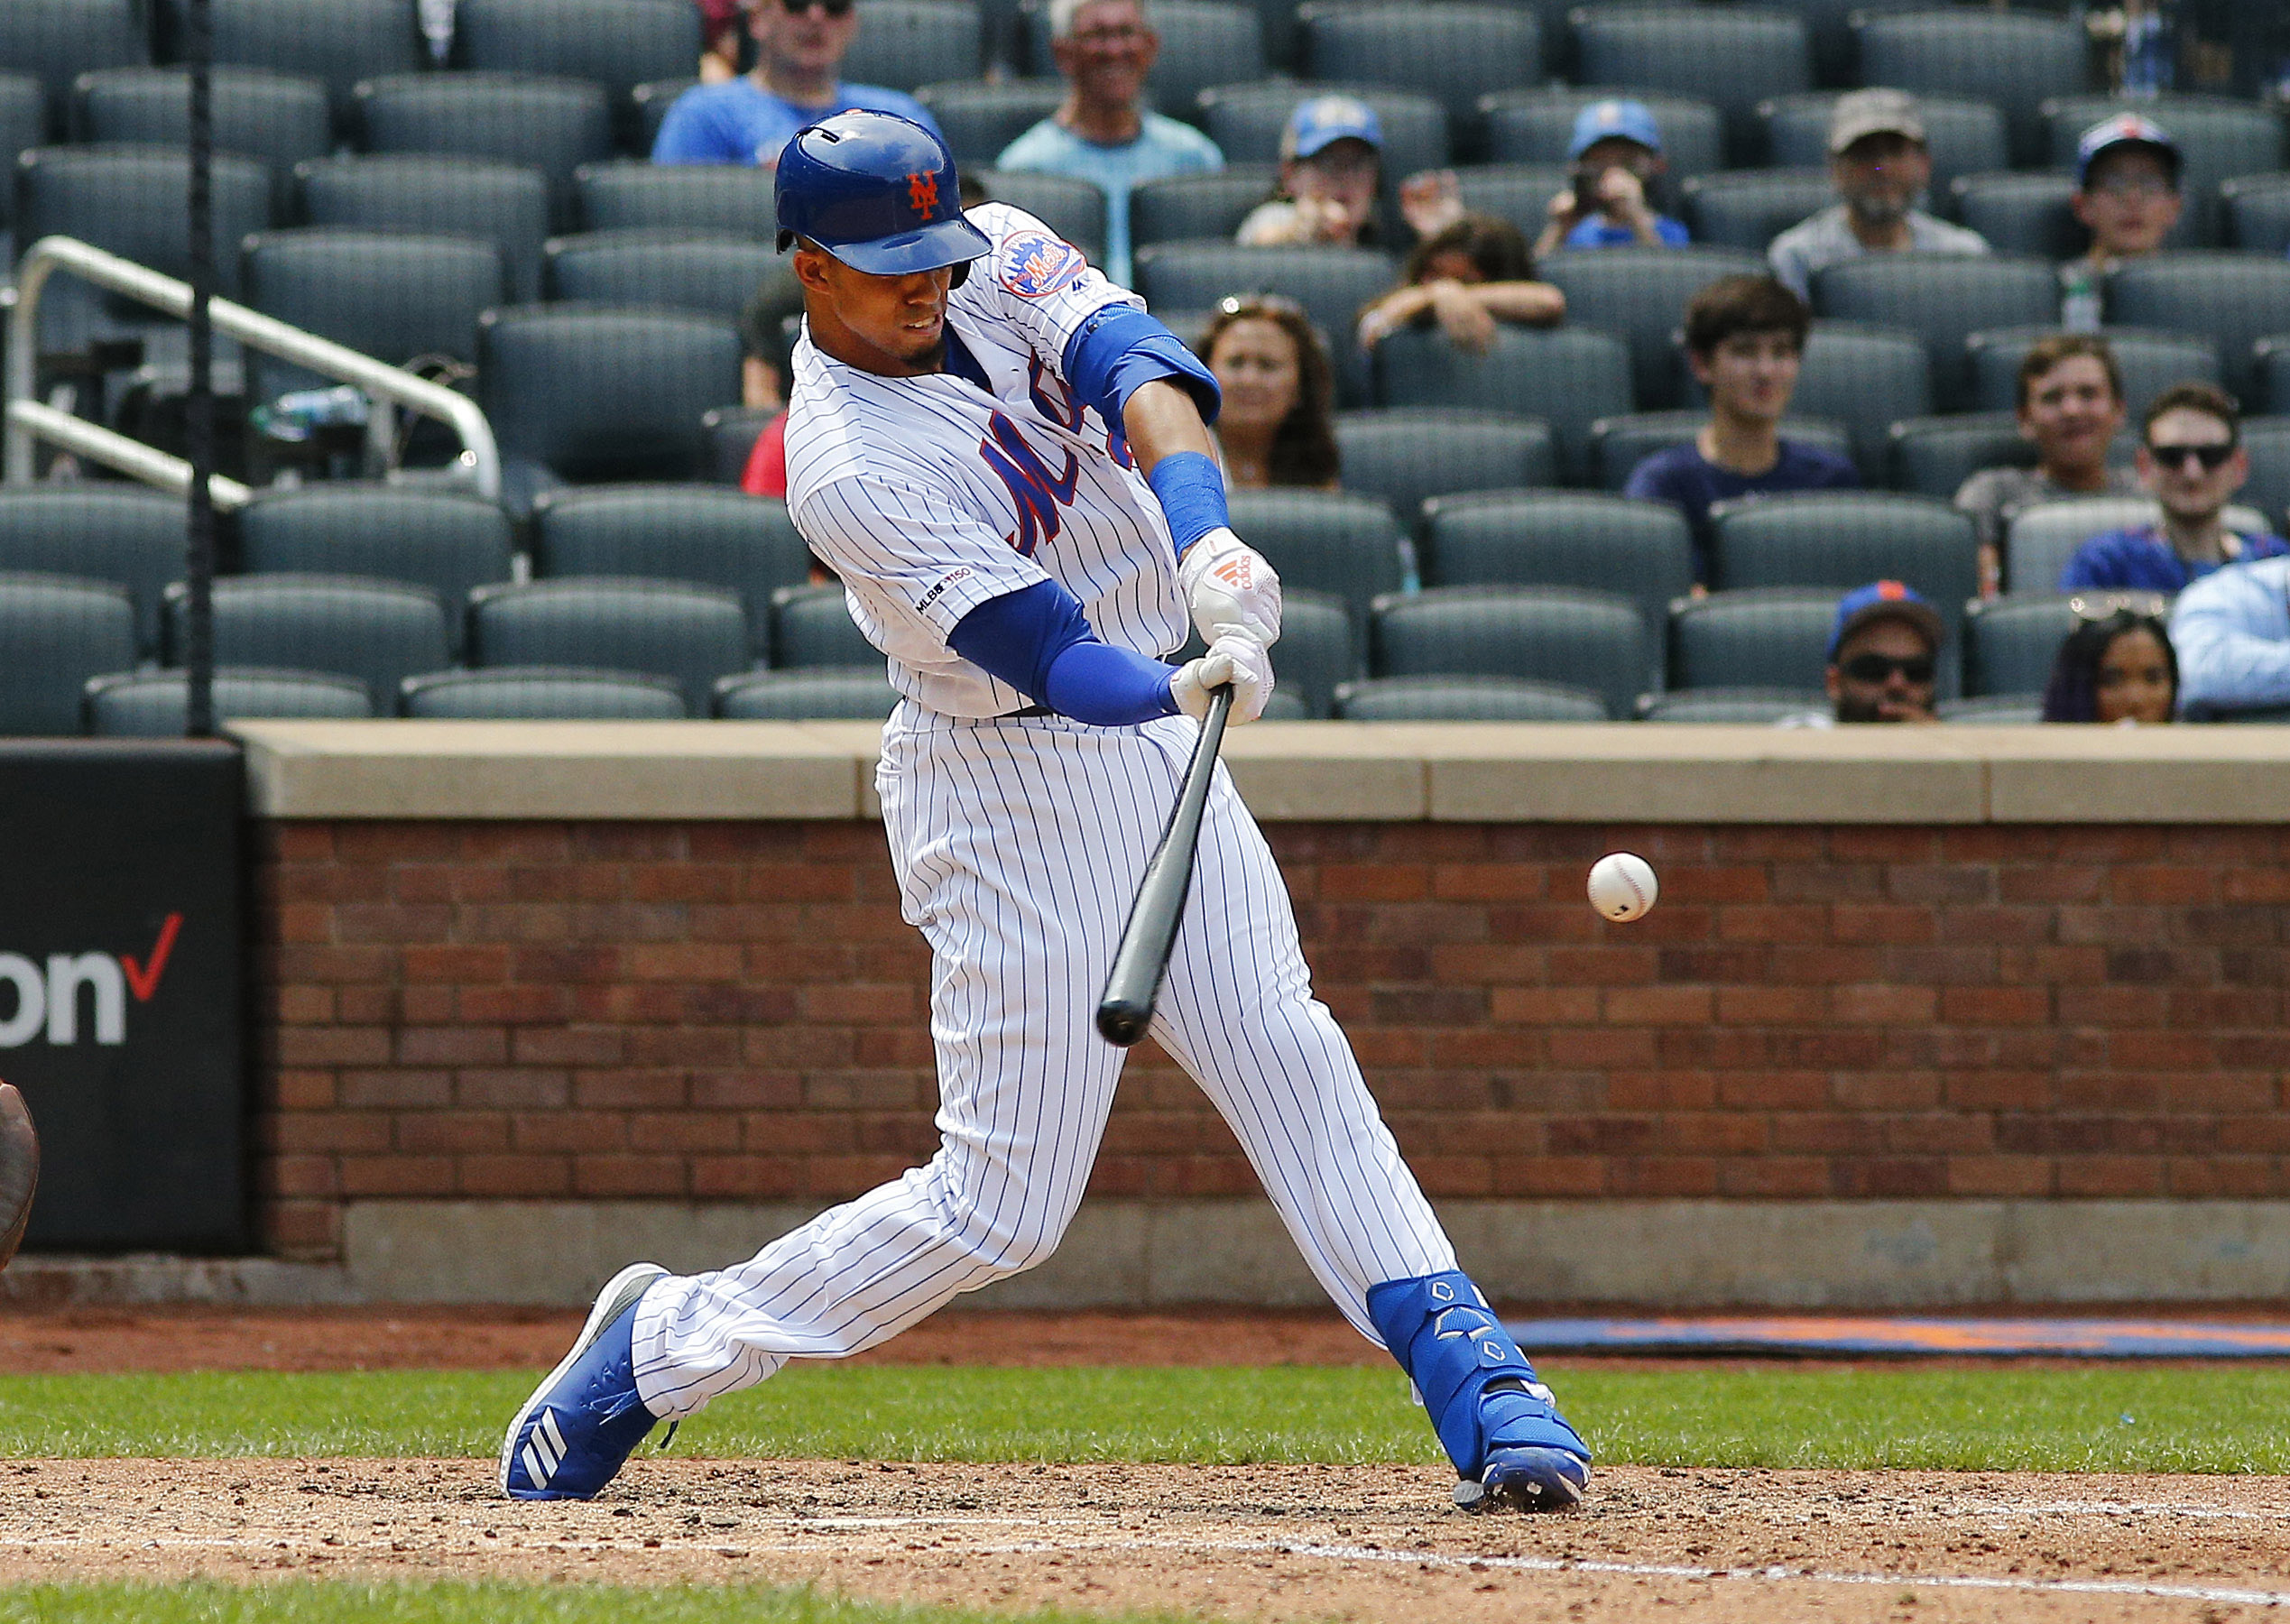 Mike's Mets Player Review Series: Aaron Altherr